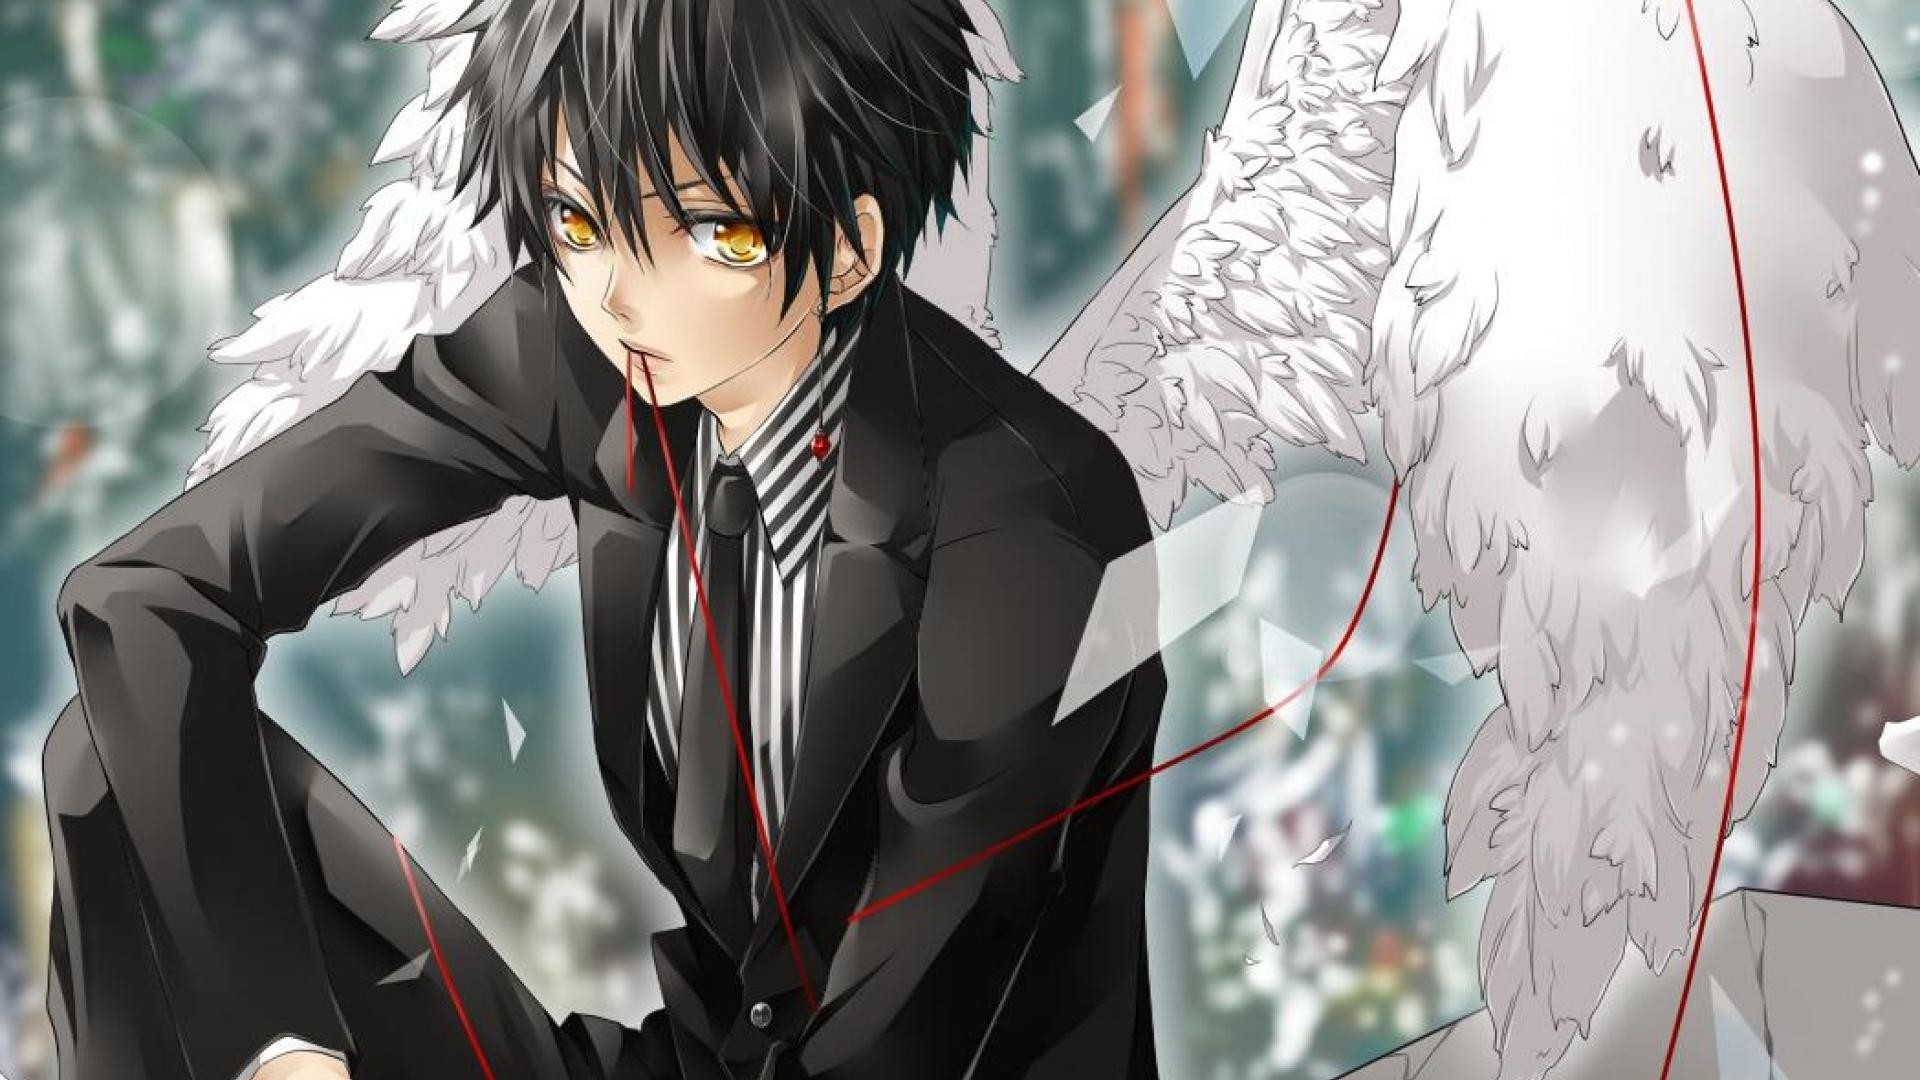 Sad anime boy wallpapers 67 background pictures - Wallpaper hd anime boy ...